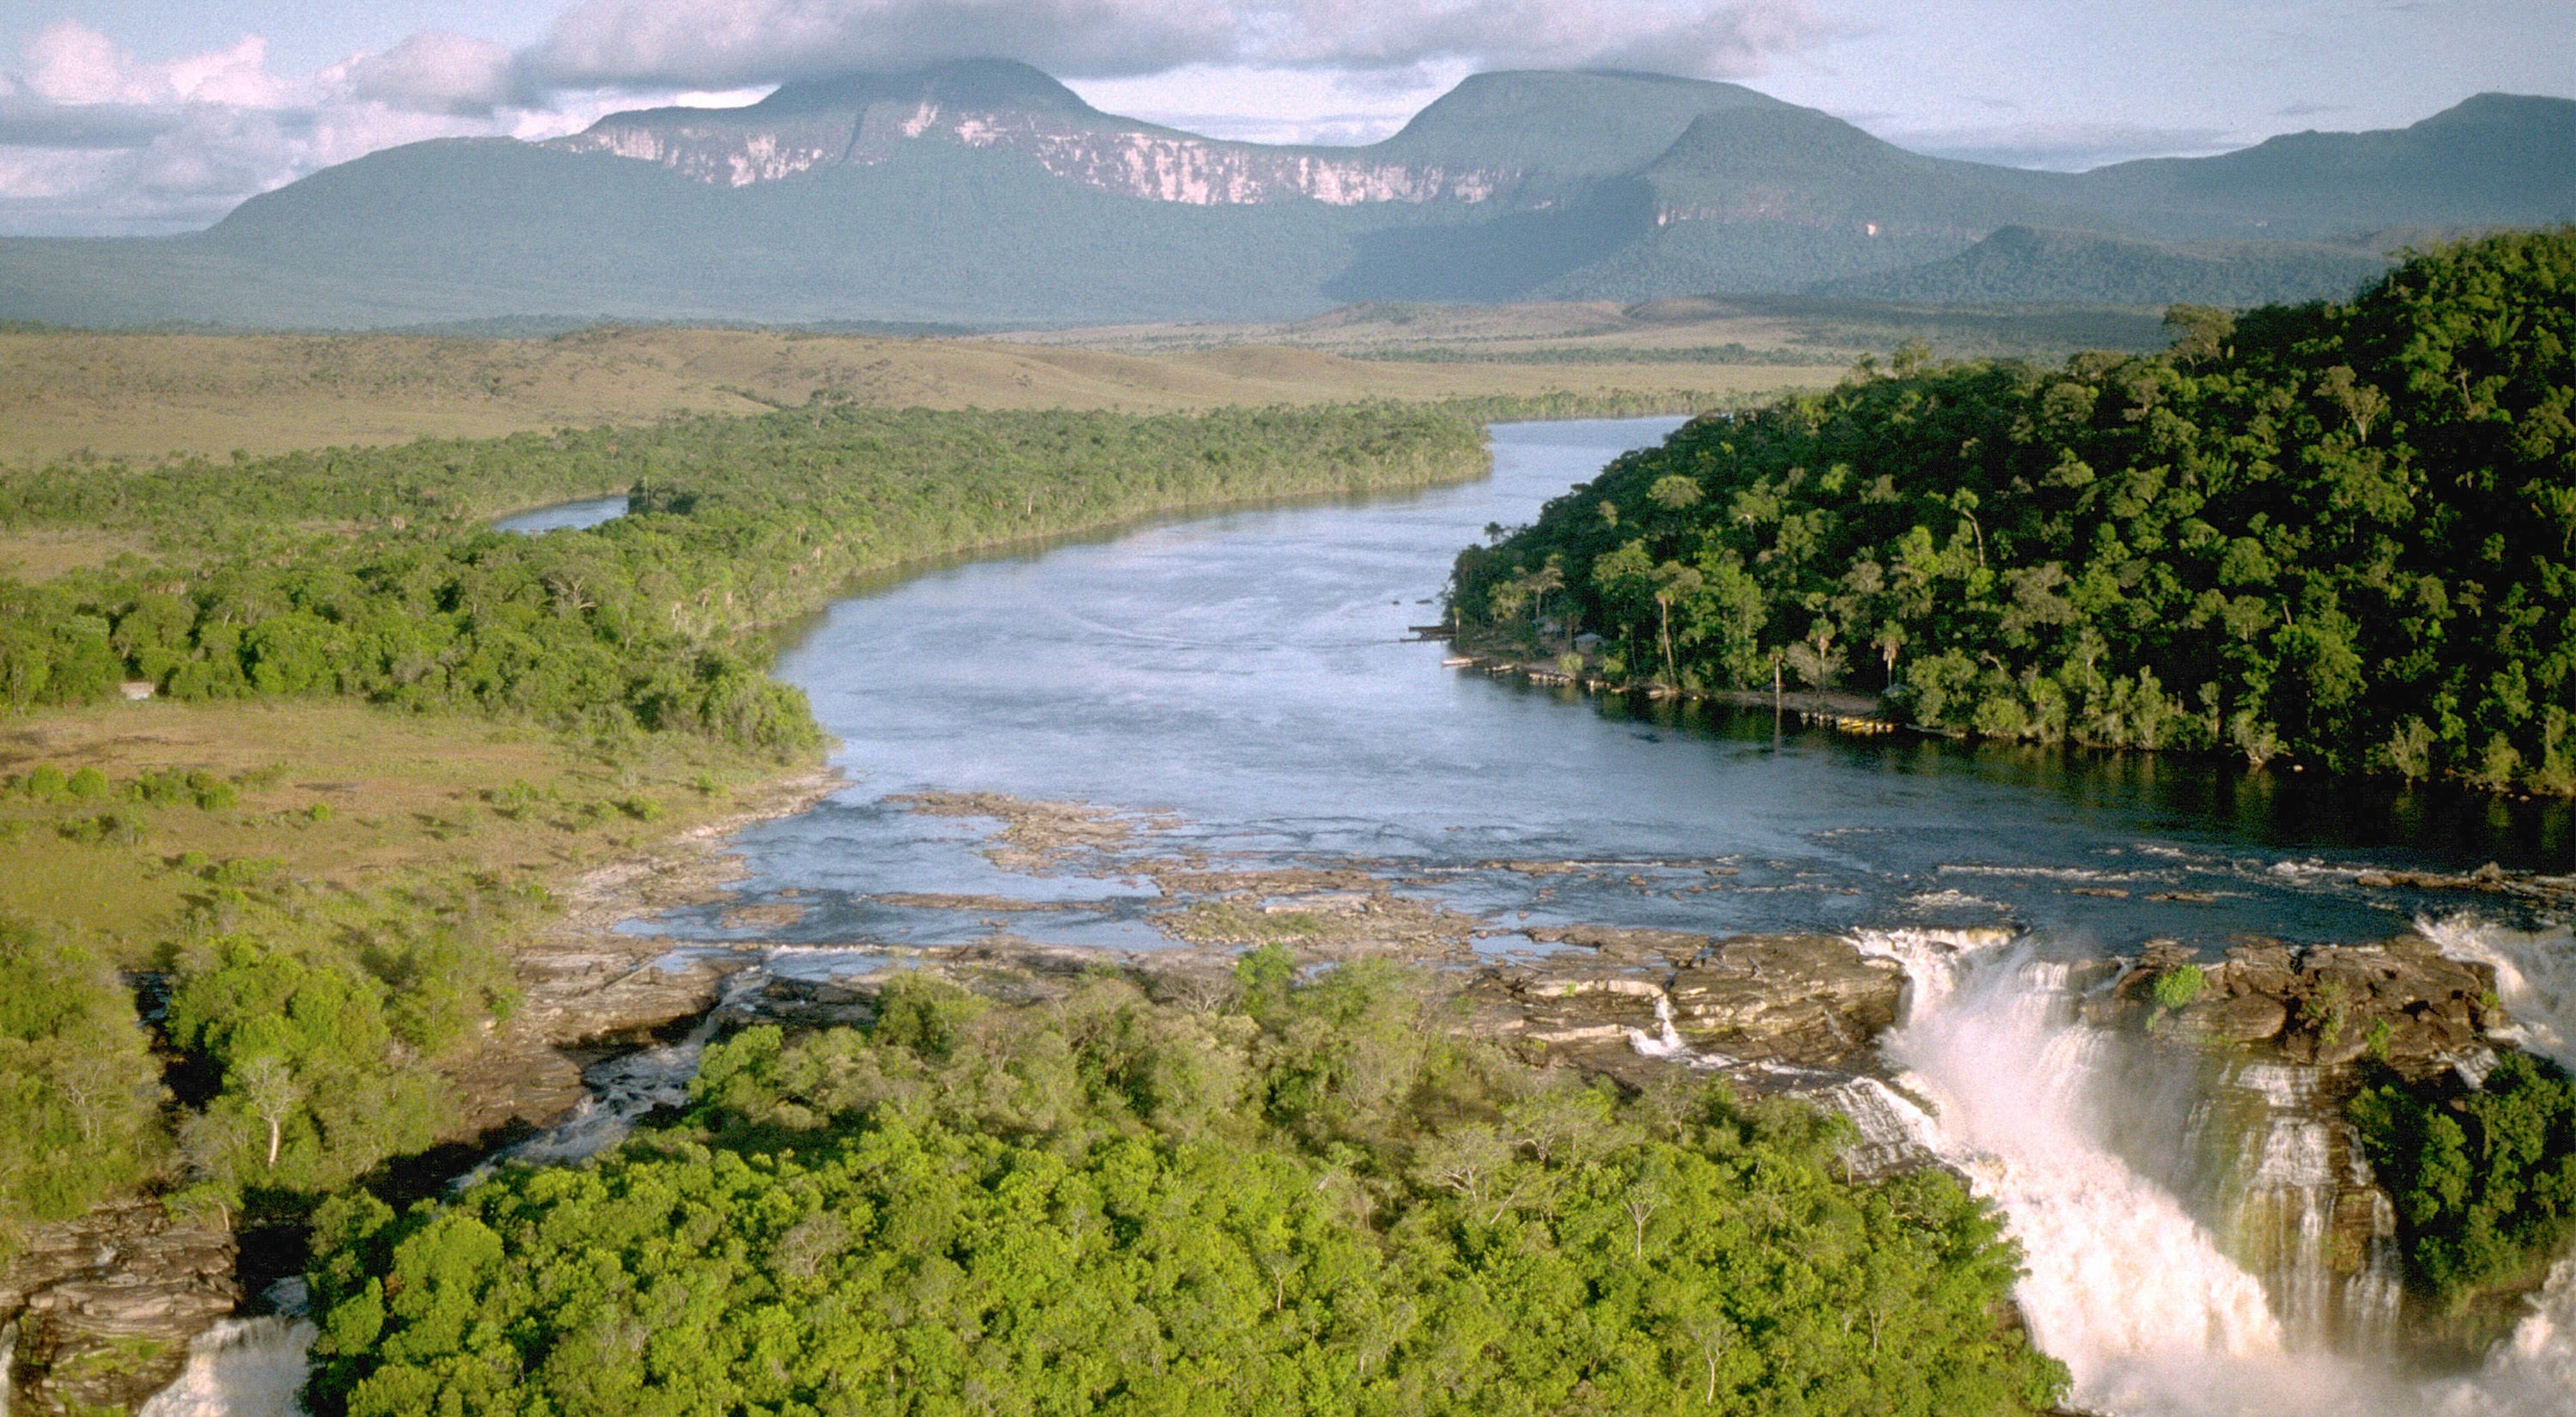 Aerial view of waterfalls at Canaima National Park in Venezuela, South America.